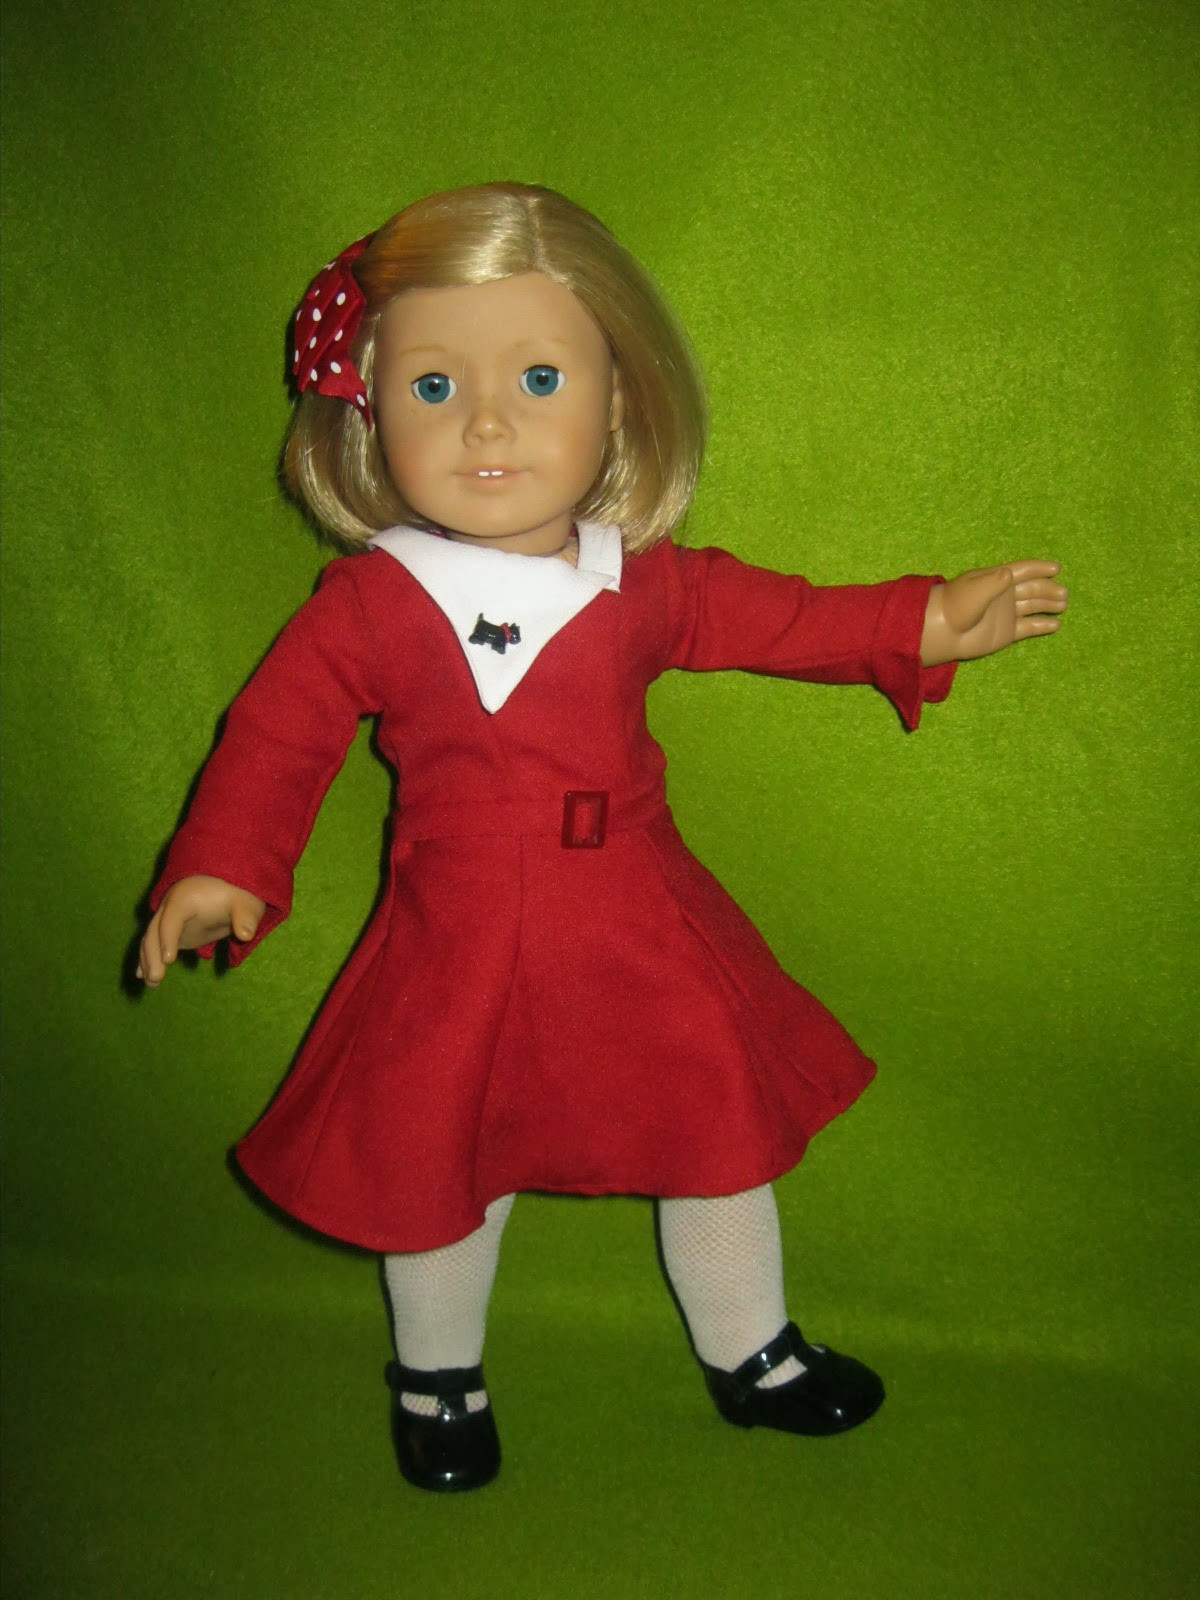 Luxury American Girl Outsider Historical Clothes Reviews and American Girl Doll Christmas Outfits Of Wonderful 40 Ideas American Girl Doll Christmas Outfits